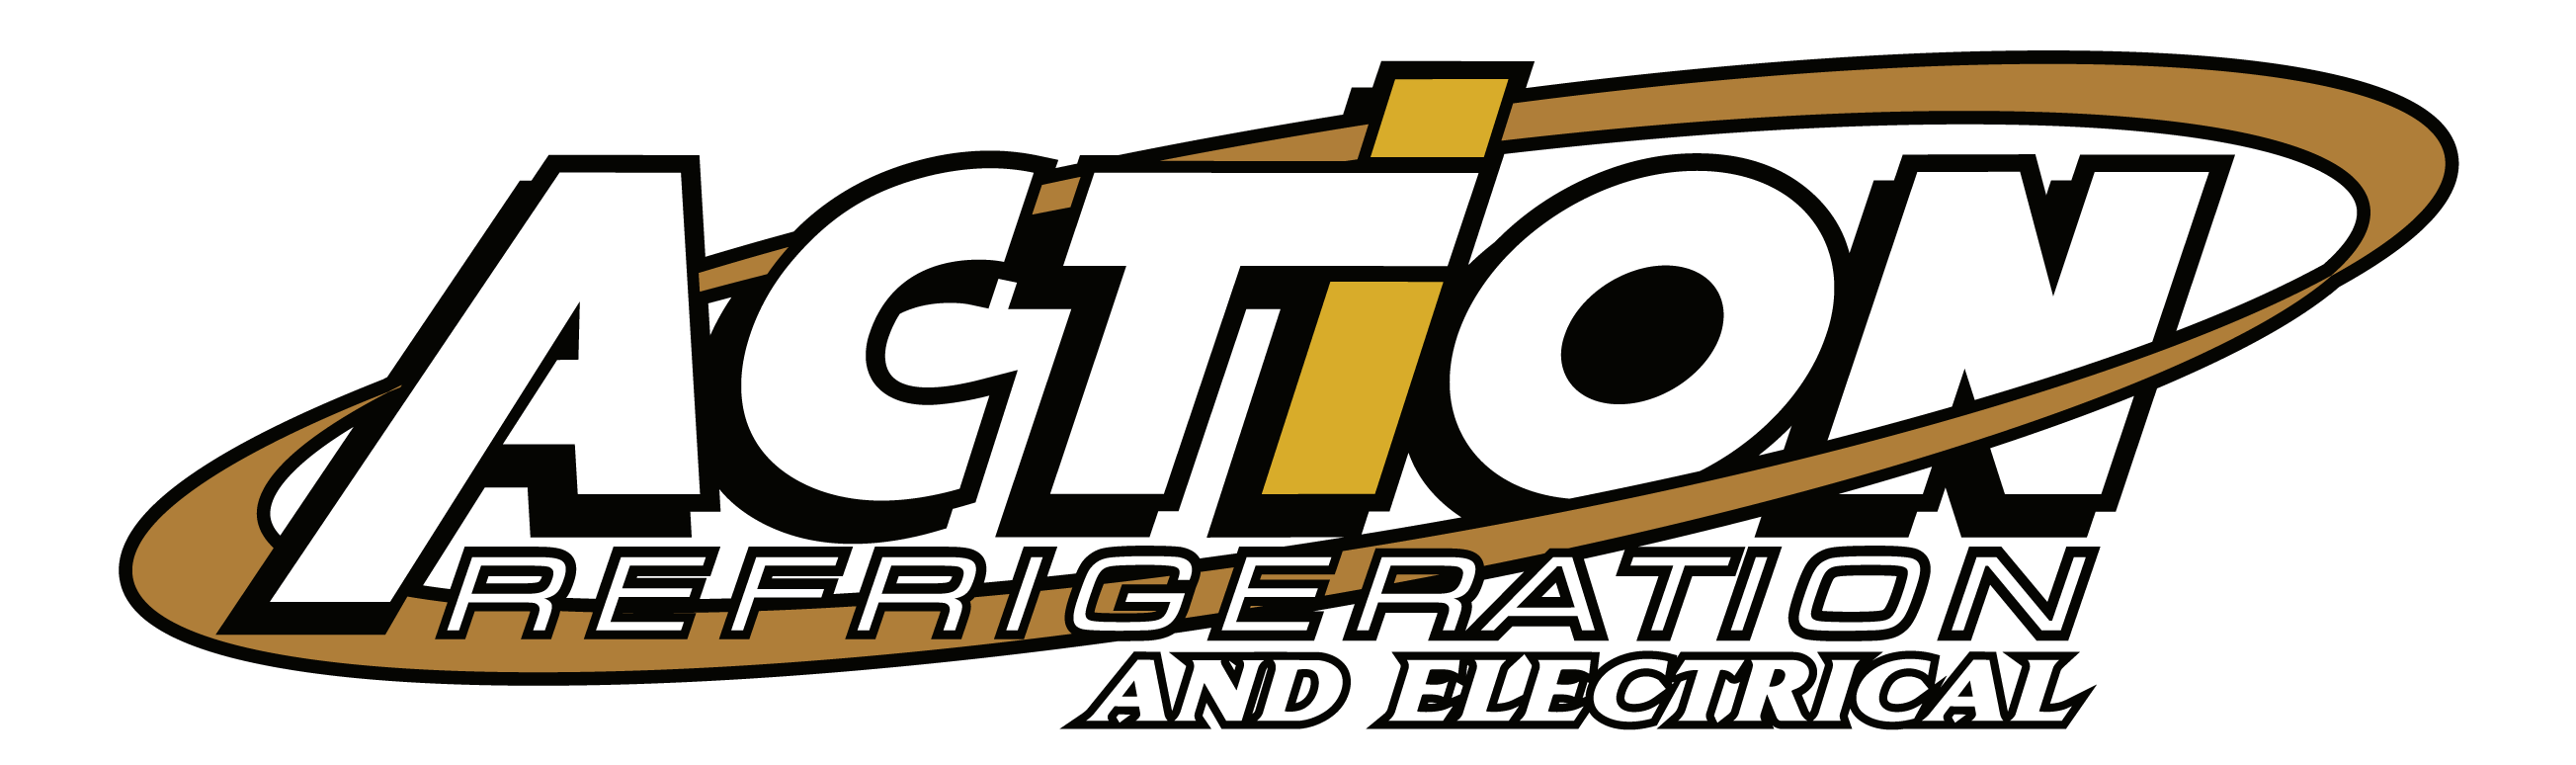 Action Refrigeration and Electrical